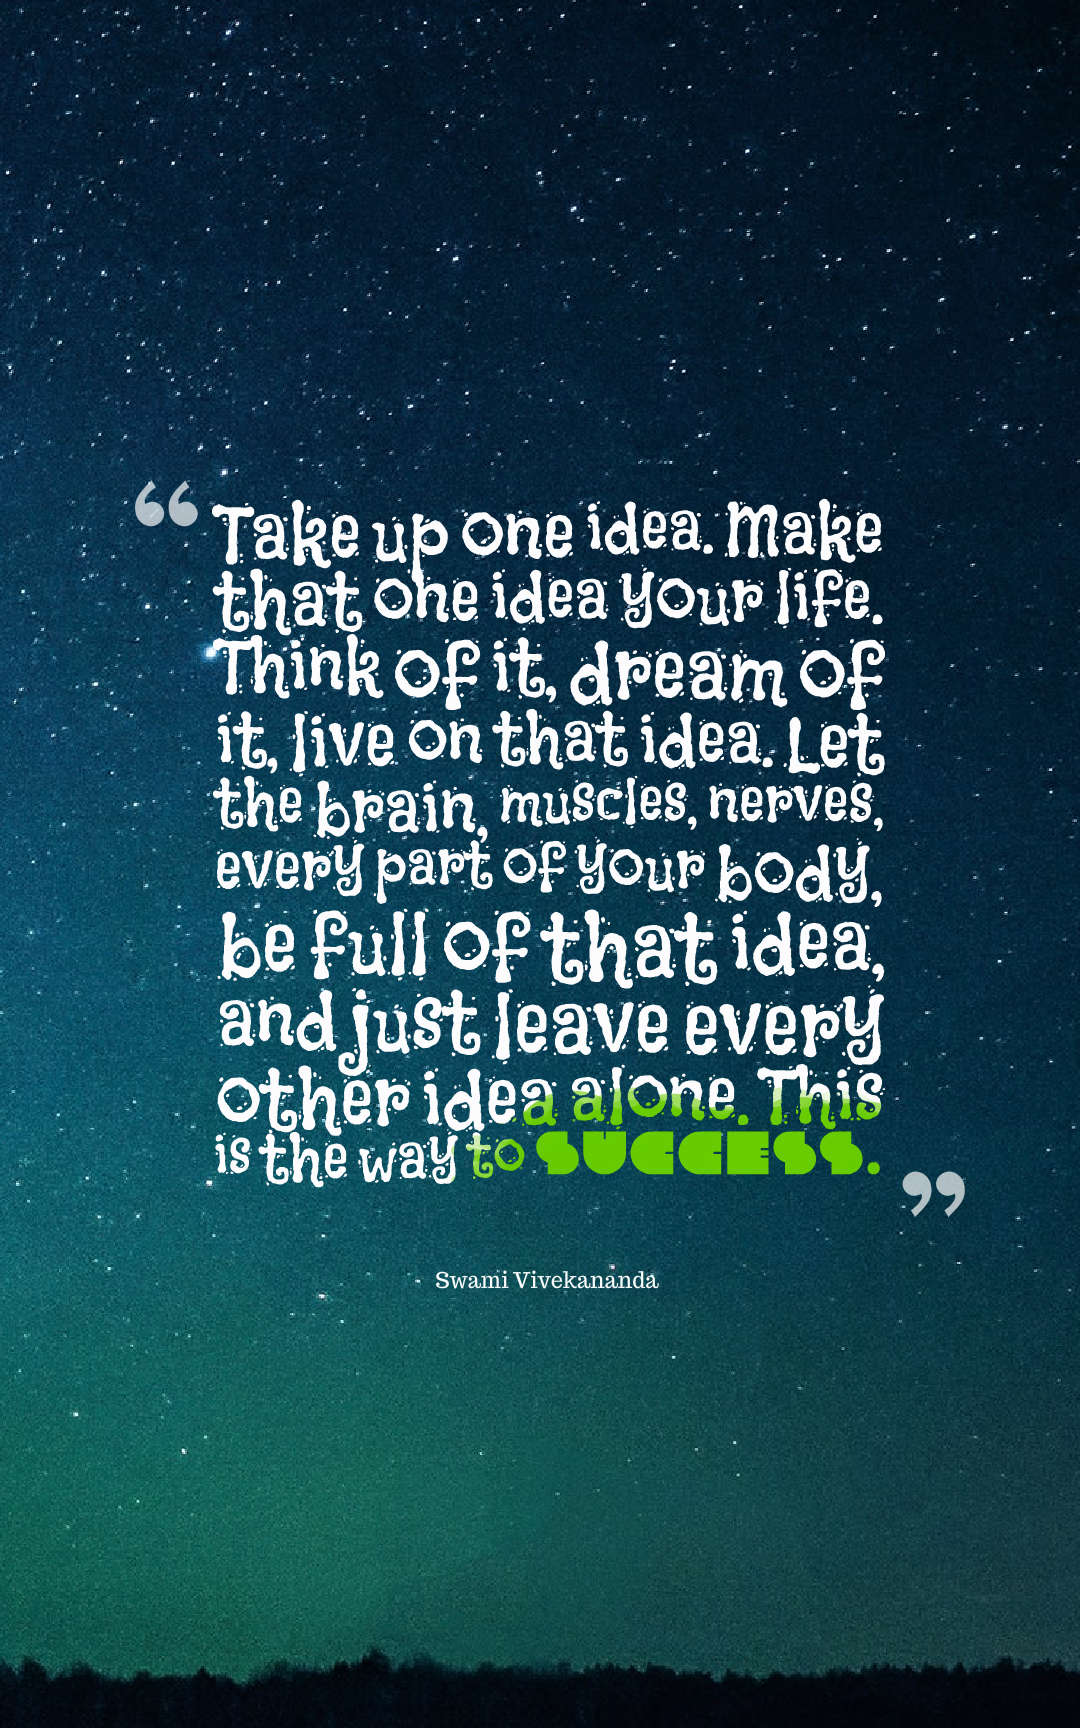 Quotes image of Take up one idea. Make that one idea your life. Think of it, dream of it, live on that idea. Let the brain, muscles, nerves, every part of your body, be full of that idea, and just leave every other idea alone. This is the way to success.